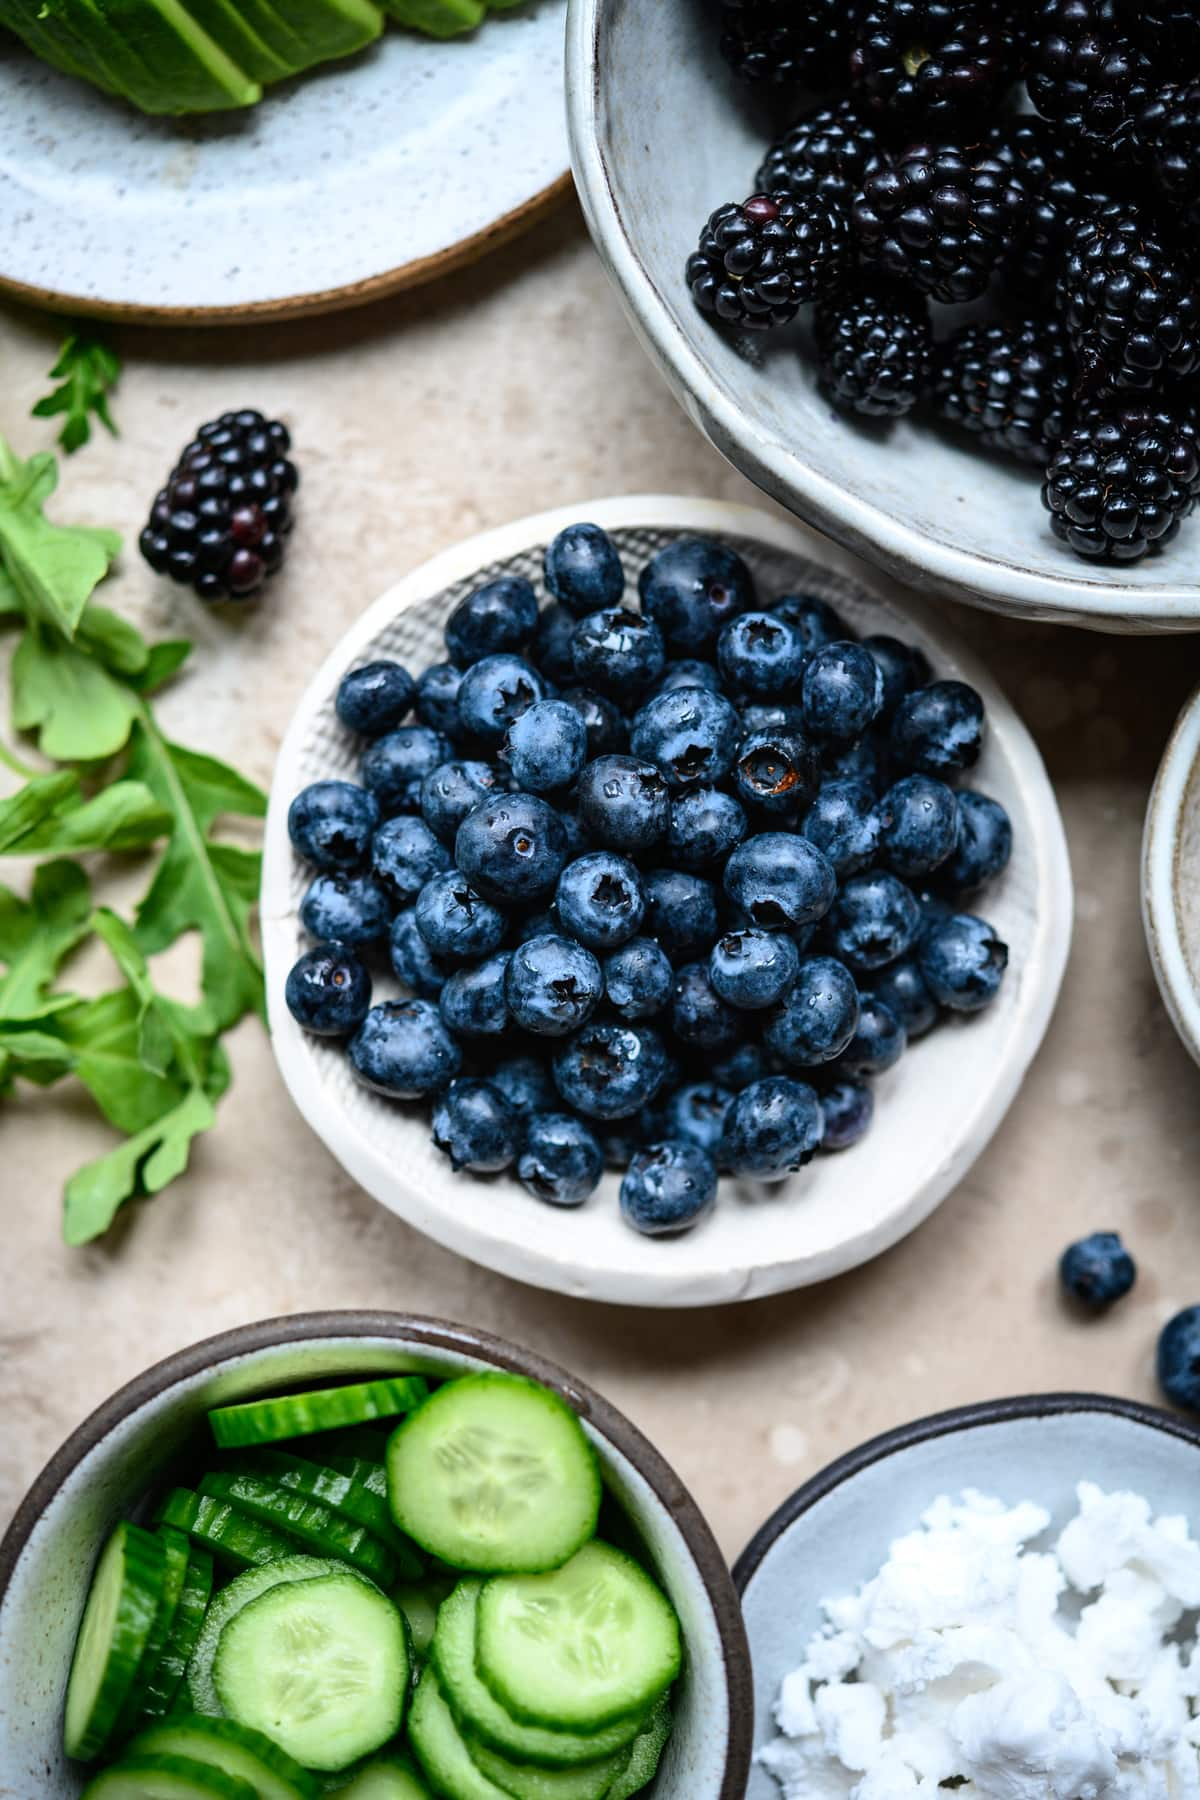 close up view of blueberries in small bowl